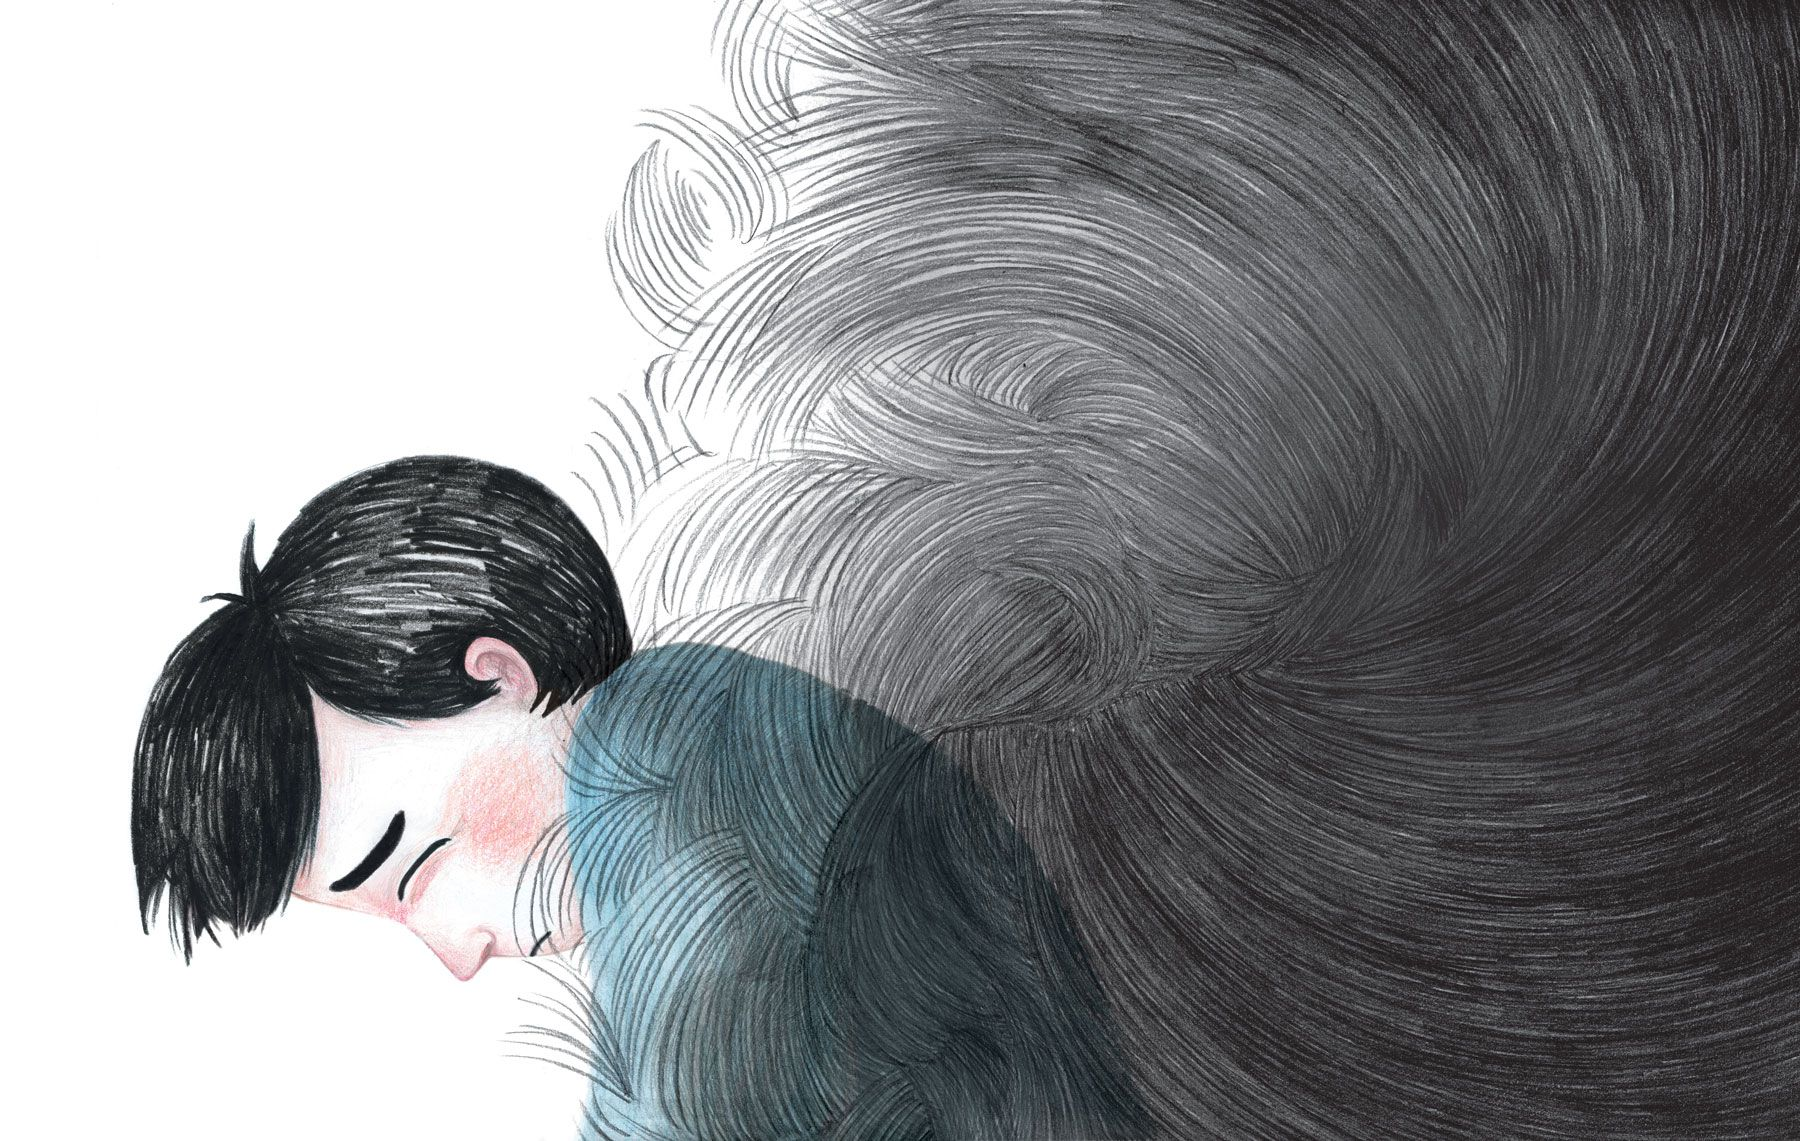 children book pencil illustration PTSD سأكون على ما يرام